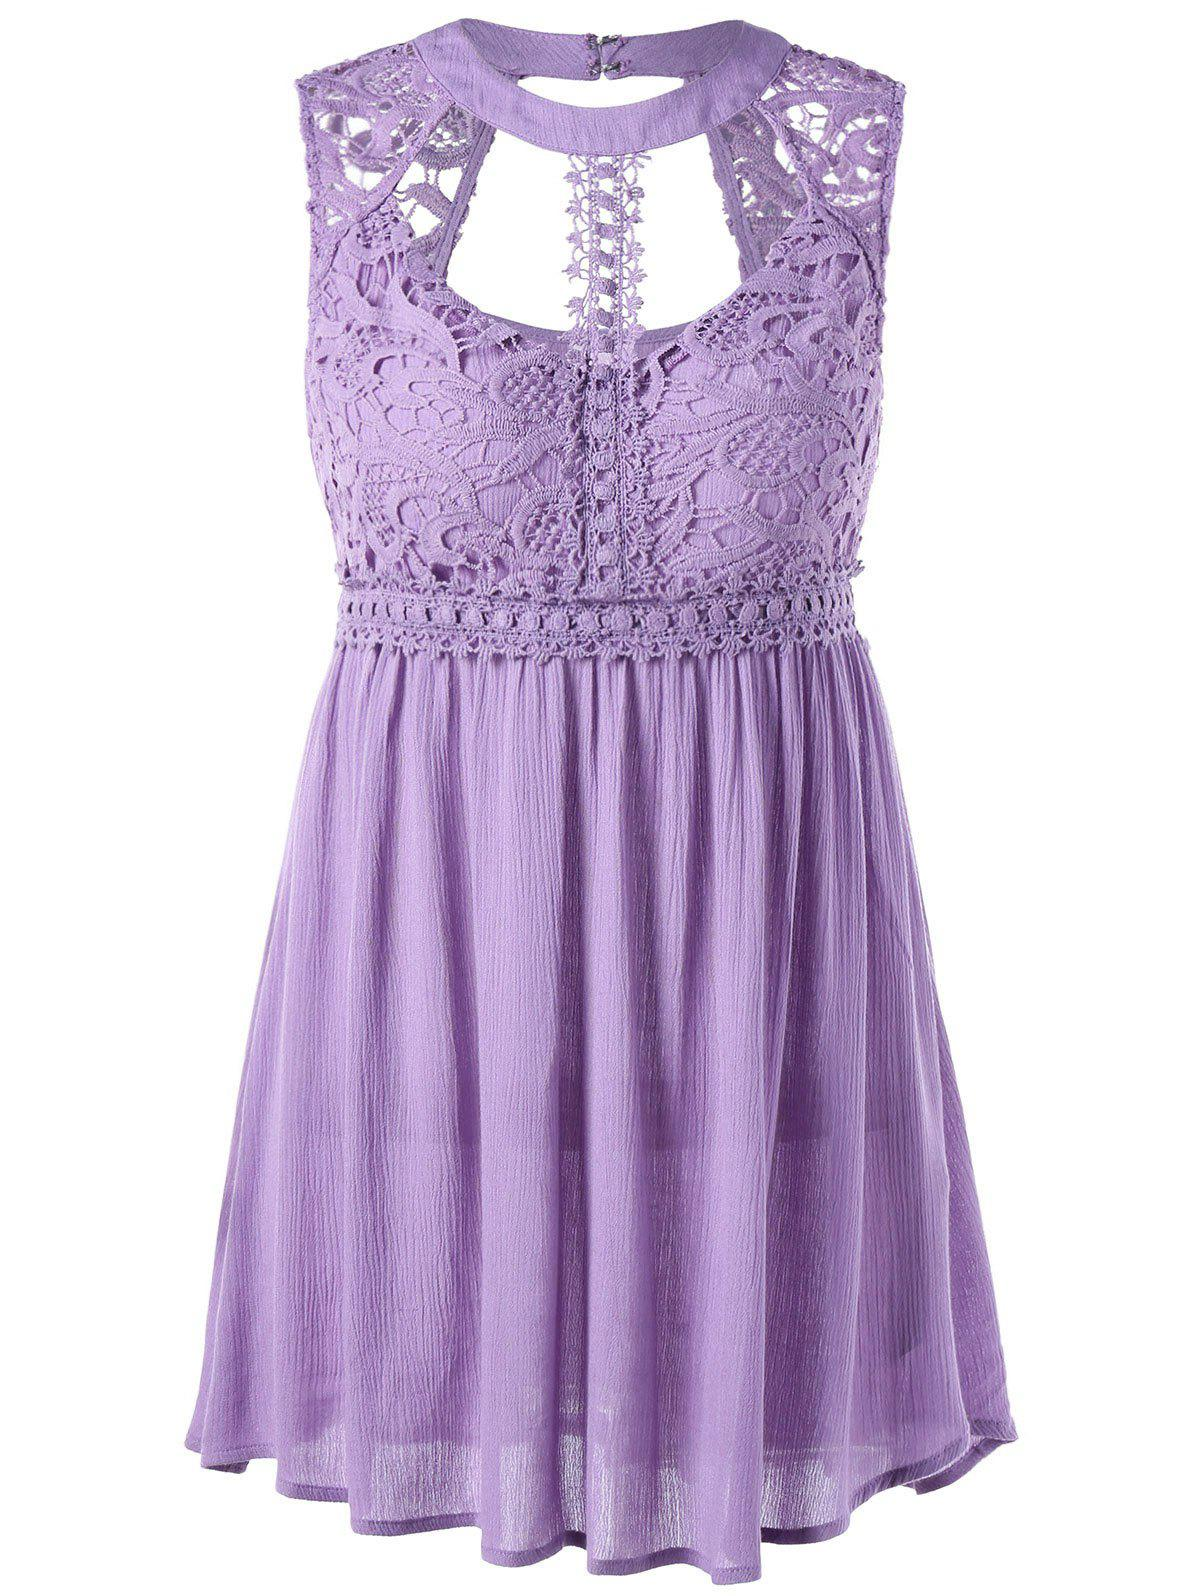 Affordable Cut Out Lace Trim Sleeveless Party Tunic Top